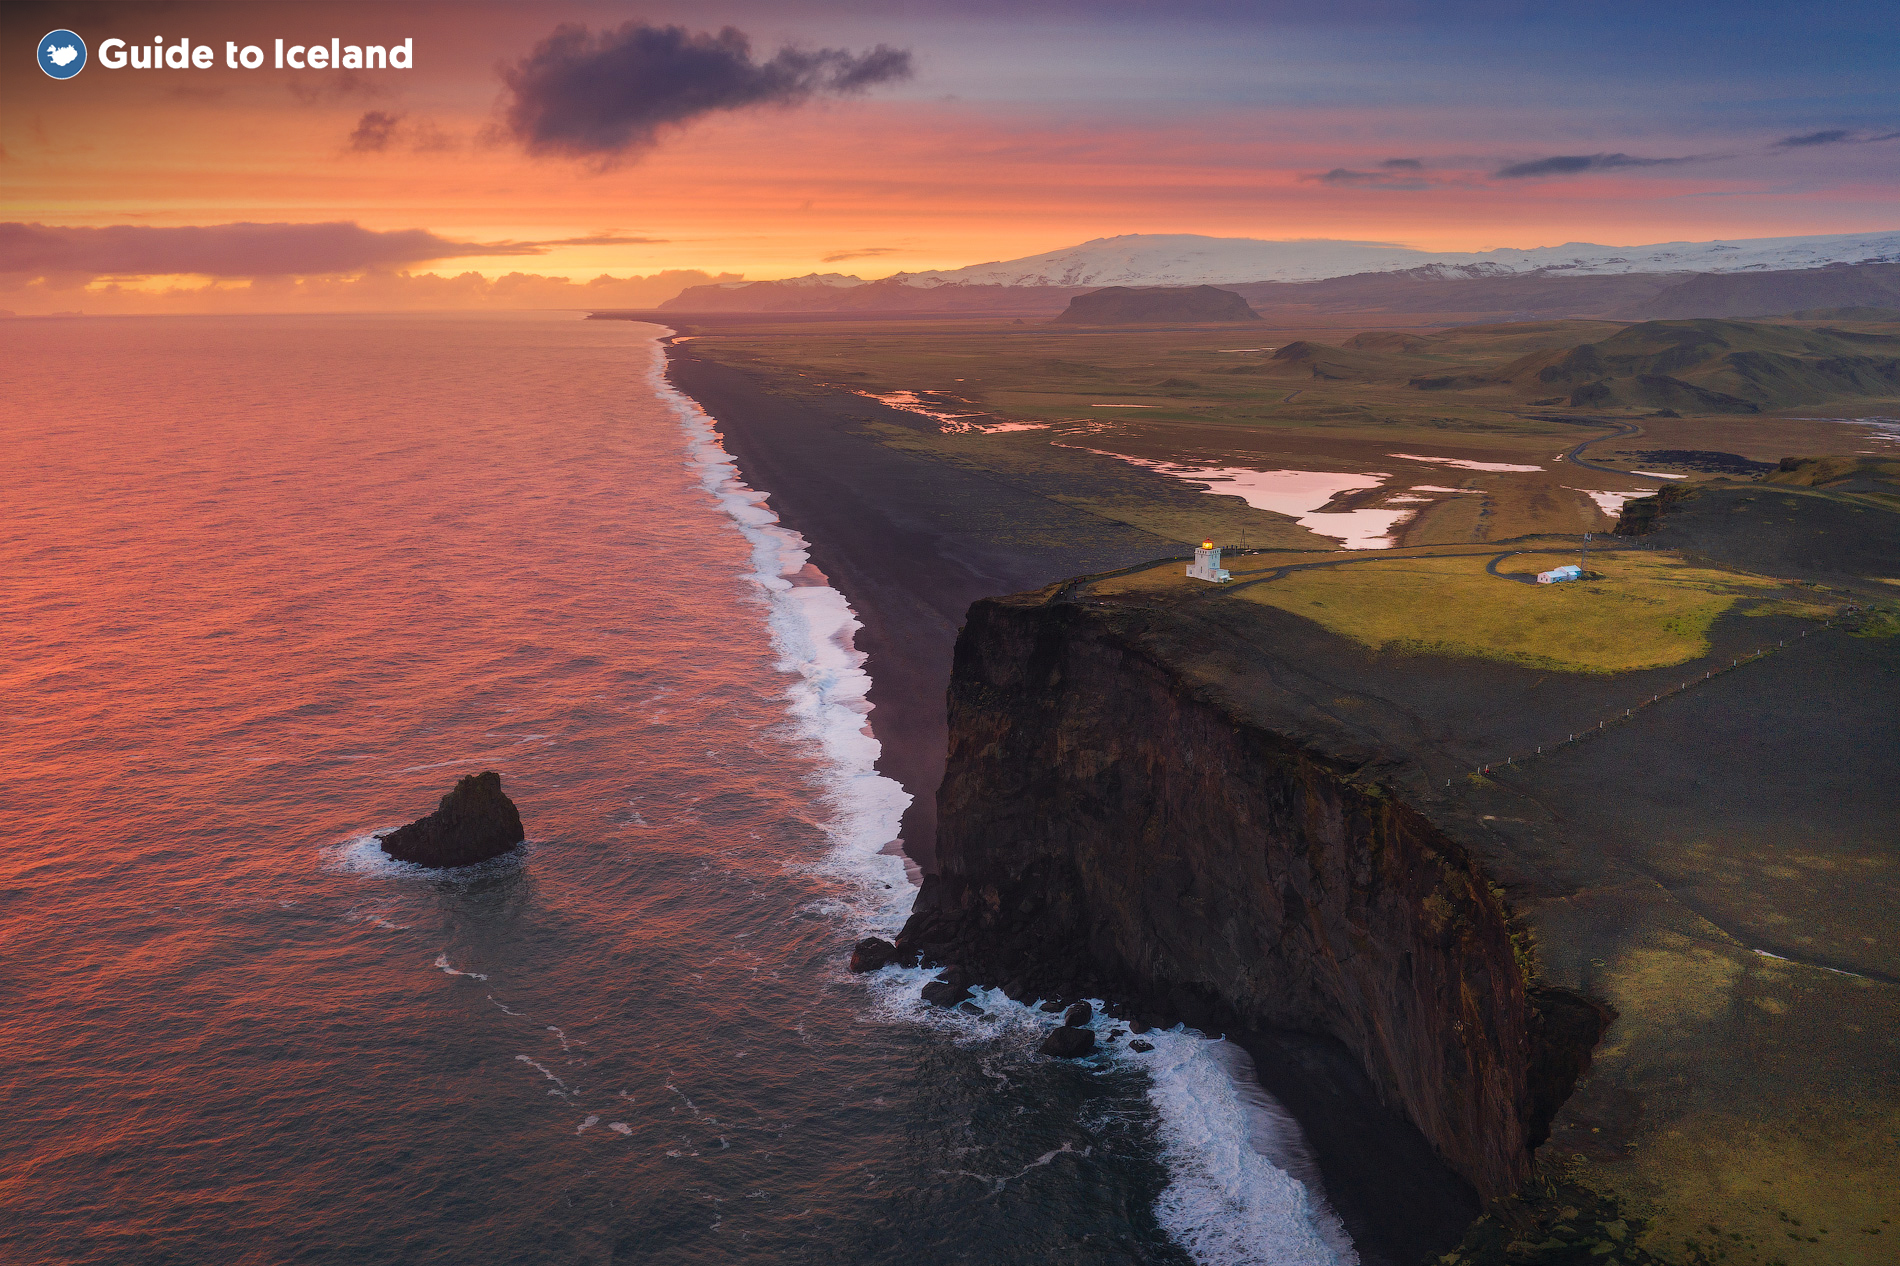 The cliffs of Dyrholaey in South Iceland is a great place for puffin watching.